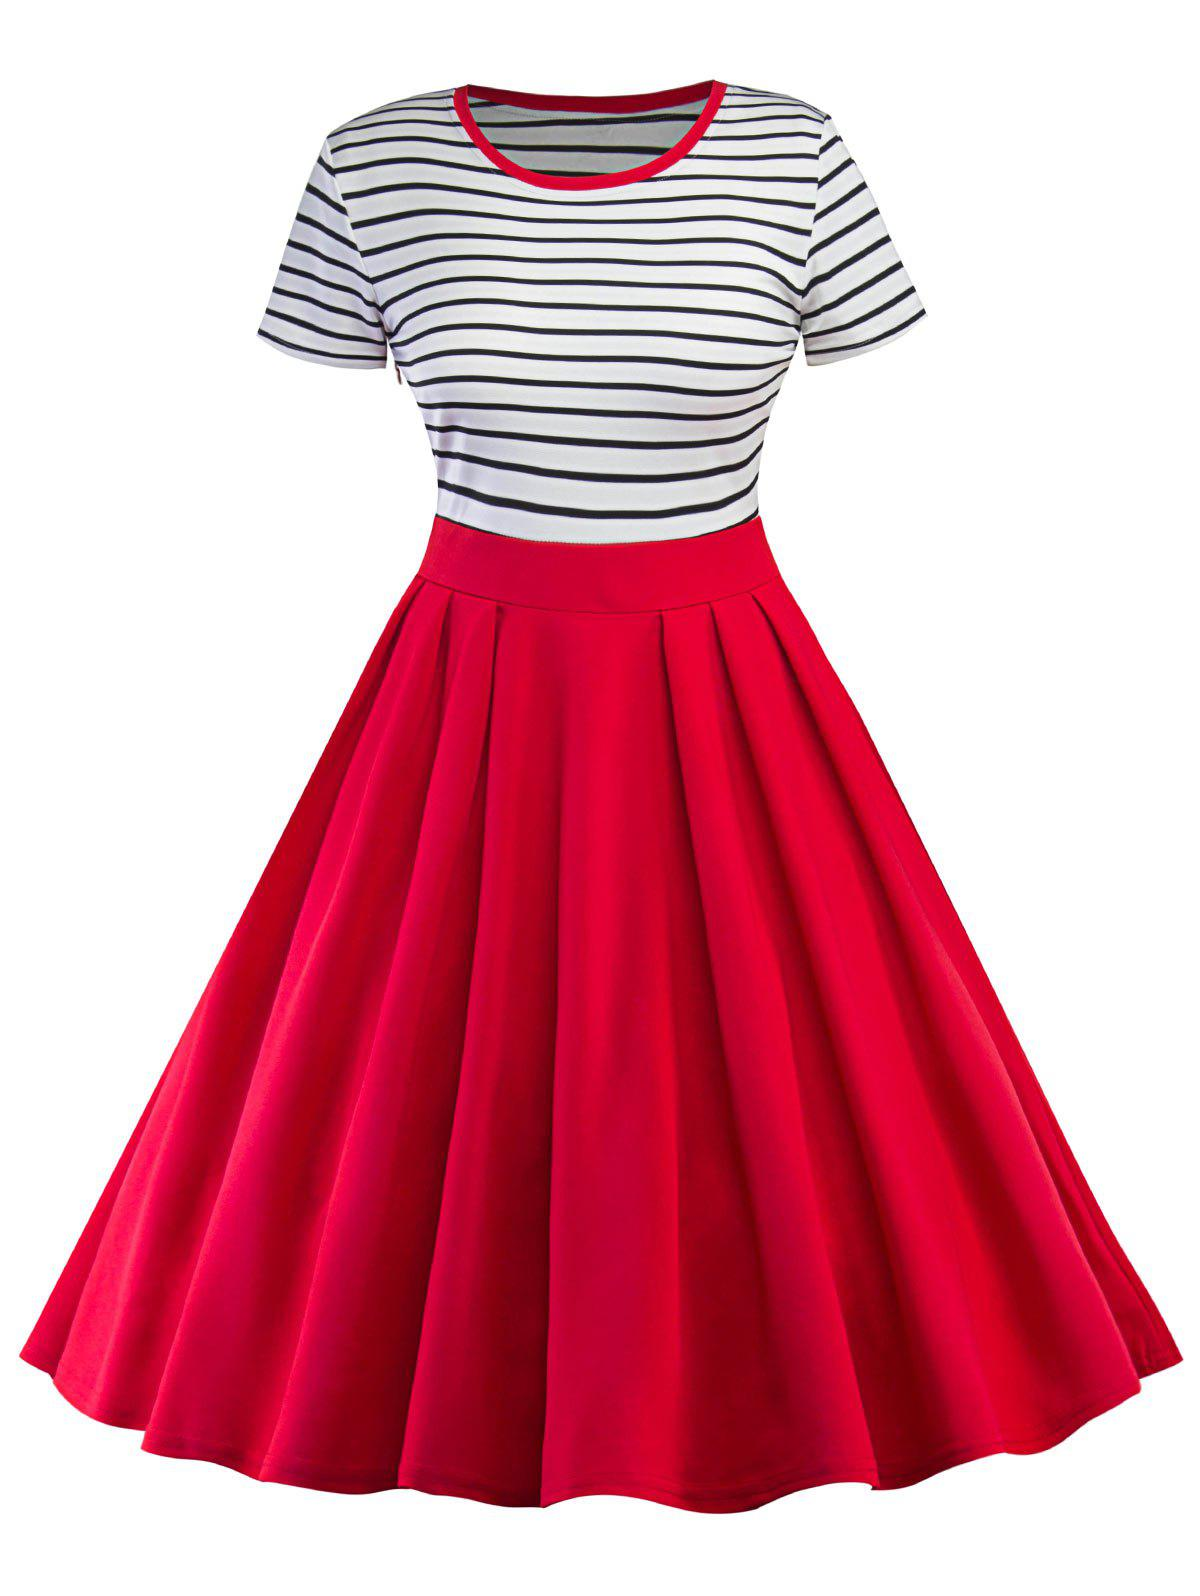 Vintage Striped Pin Up Skater DressWOMEN<br><br>Size: L; Color: RED; Style: Vintage; Material: Cotton,Polyester; Silhouette: A-Line; Dresses Length: Knee-Length; Neckline: Round Collar; Sleeve Length: Short Sleeves; Pattern Type: Striped; With Belt: No; Season: Fall,Spring; Weight: 0.4300kg; Package Contents: 1 x Dress;